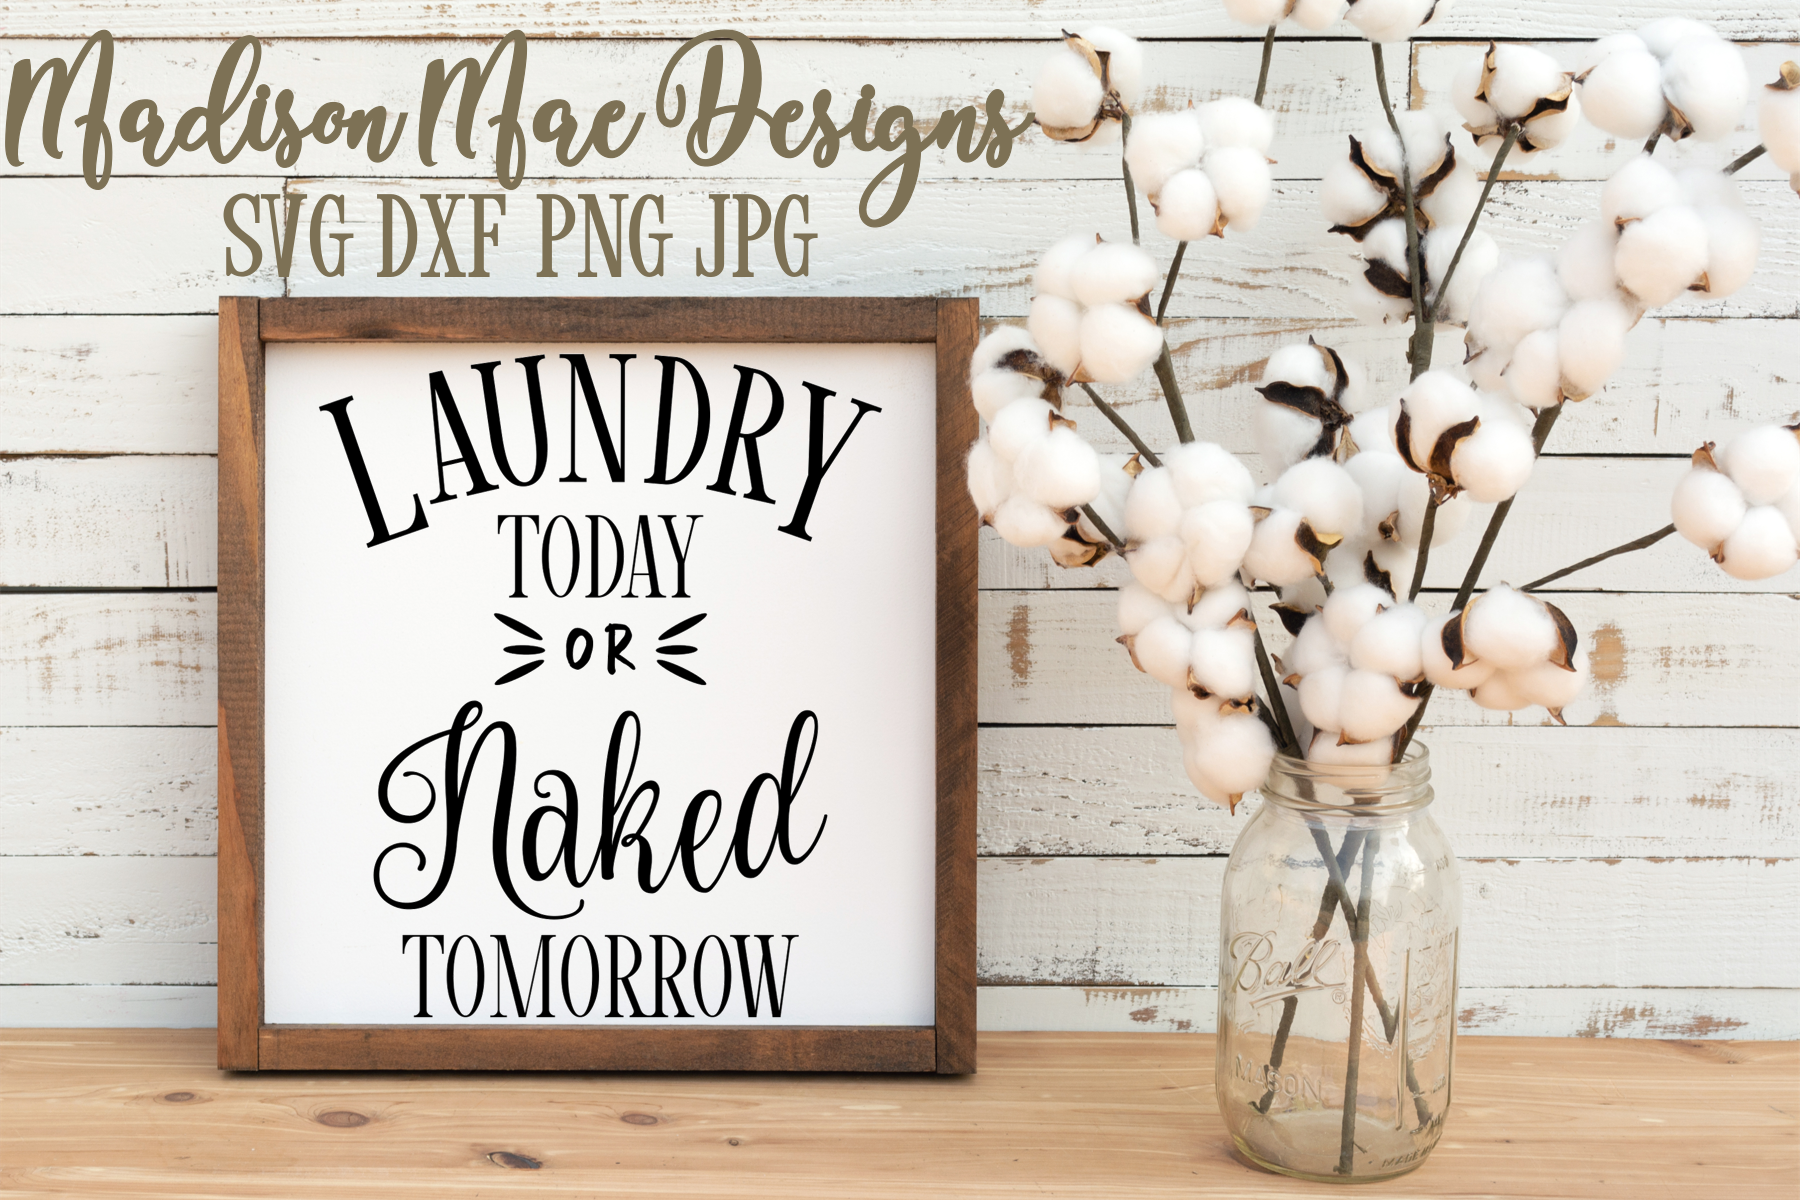 Laundry Today or Naked Tomorrow SVG Digital Cut File example image 2